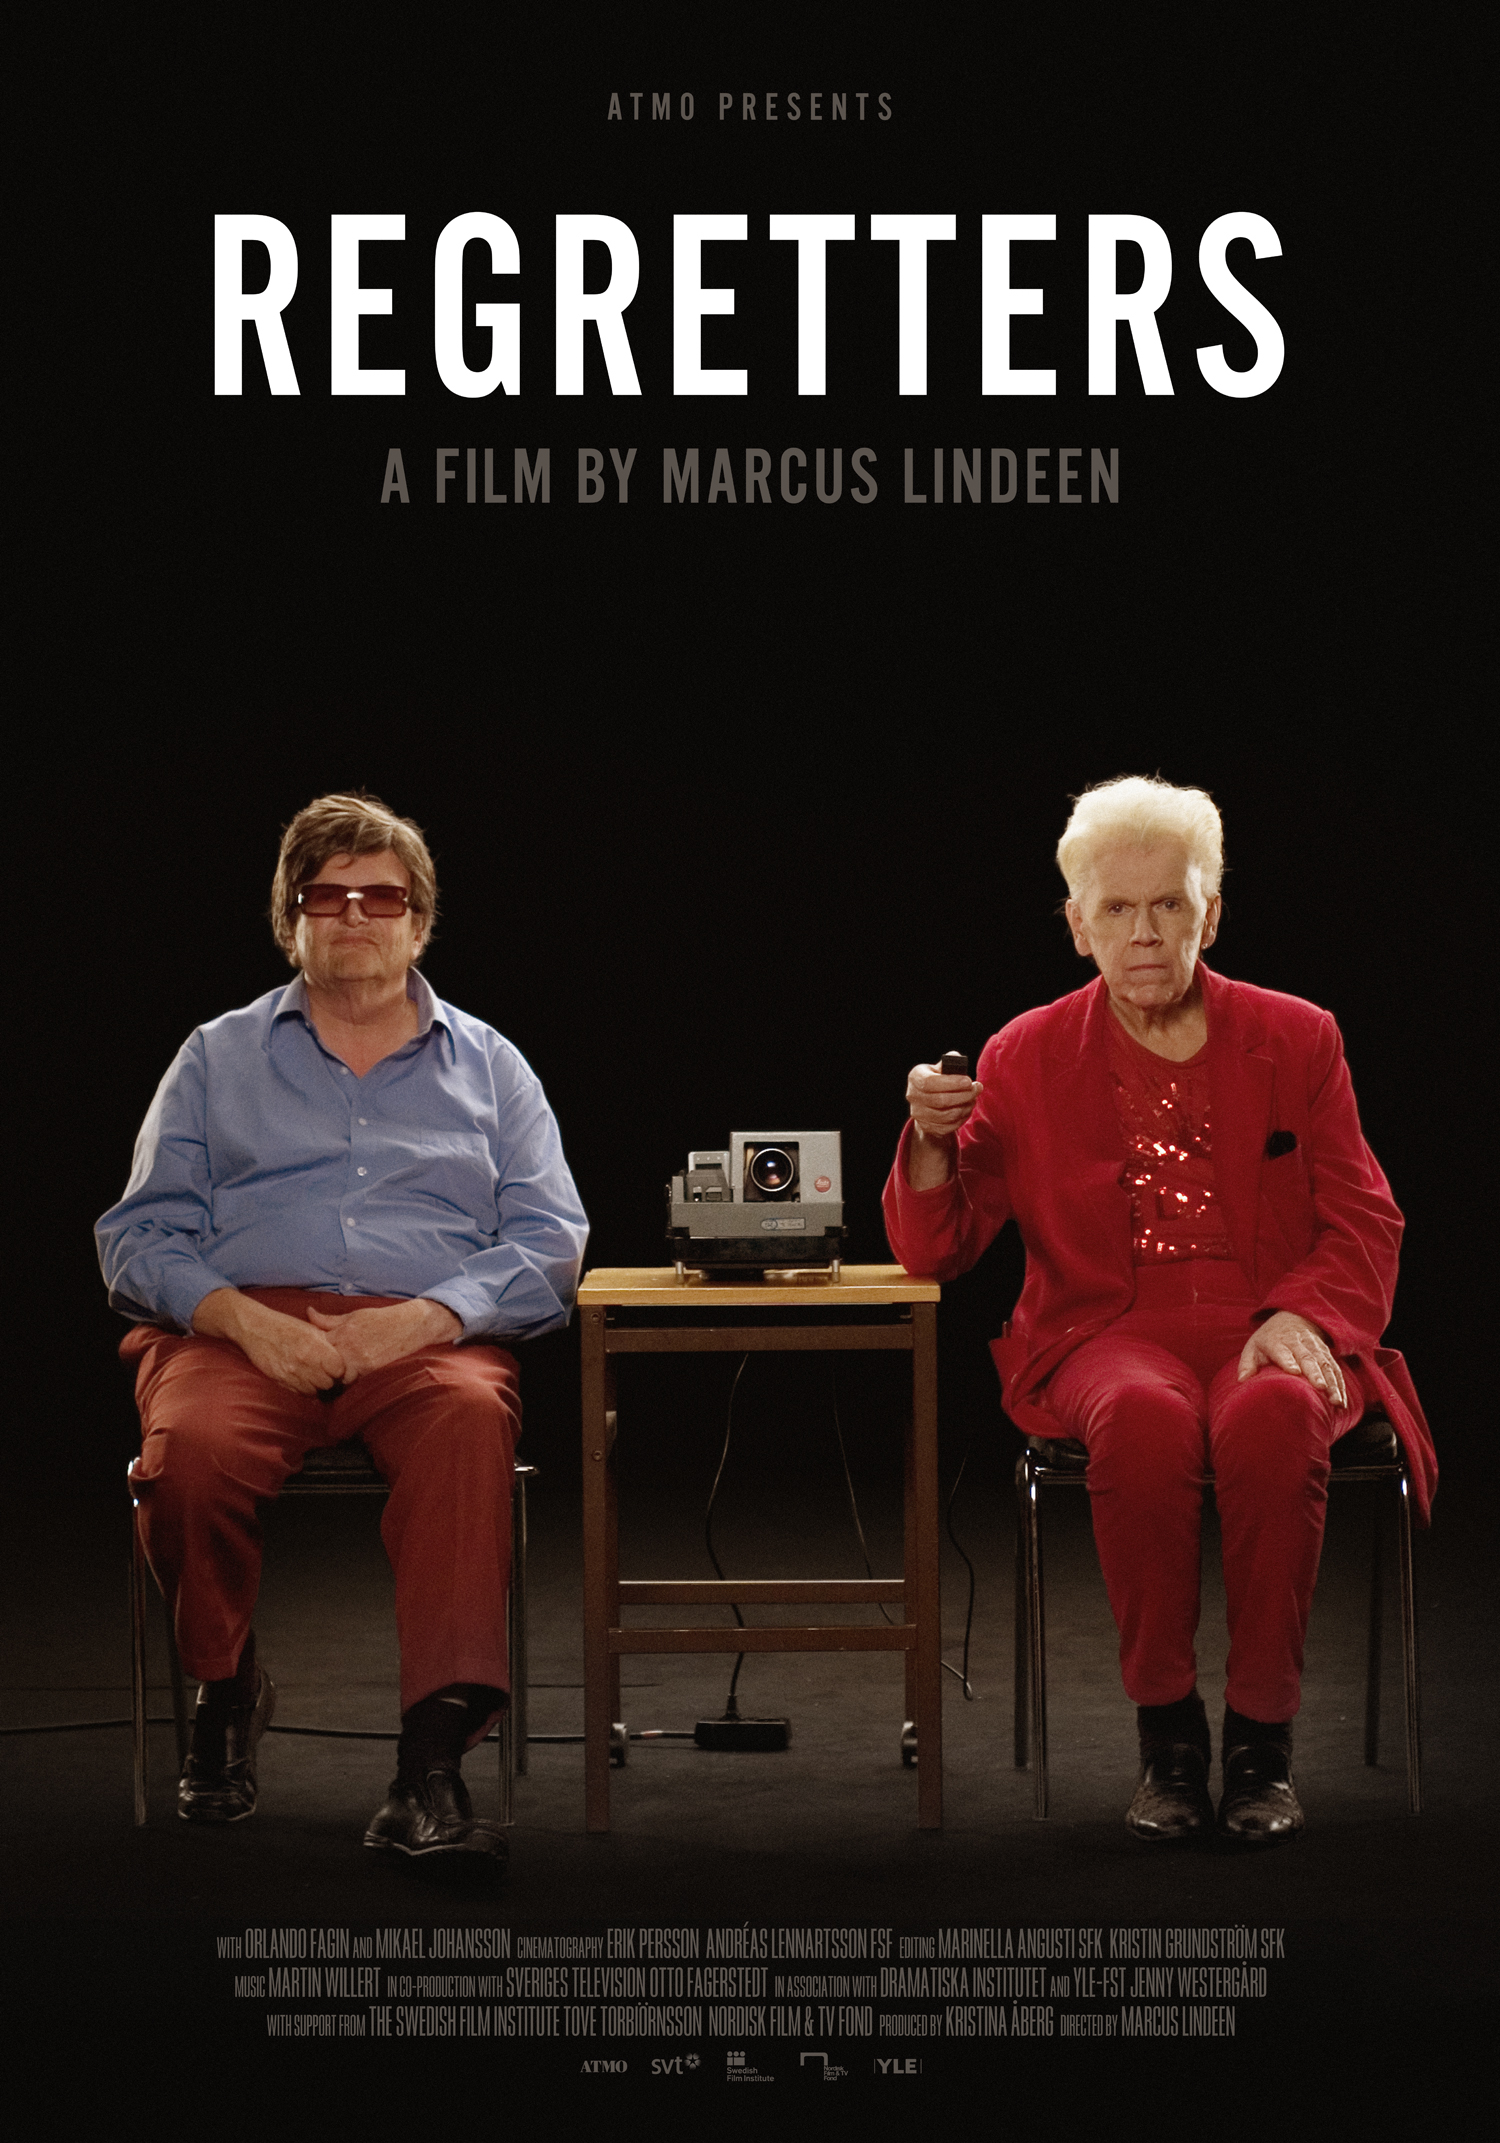 Regretters, Official Poster, 70x100 cm